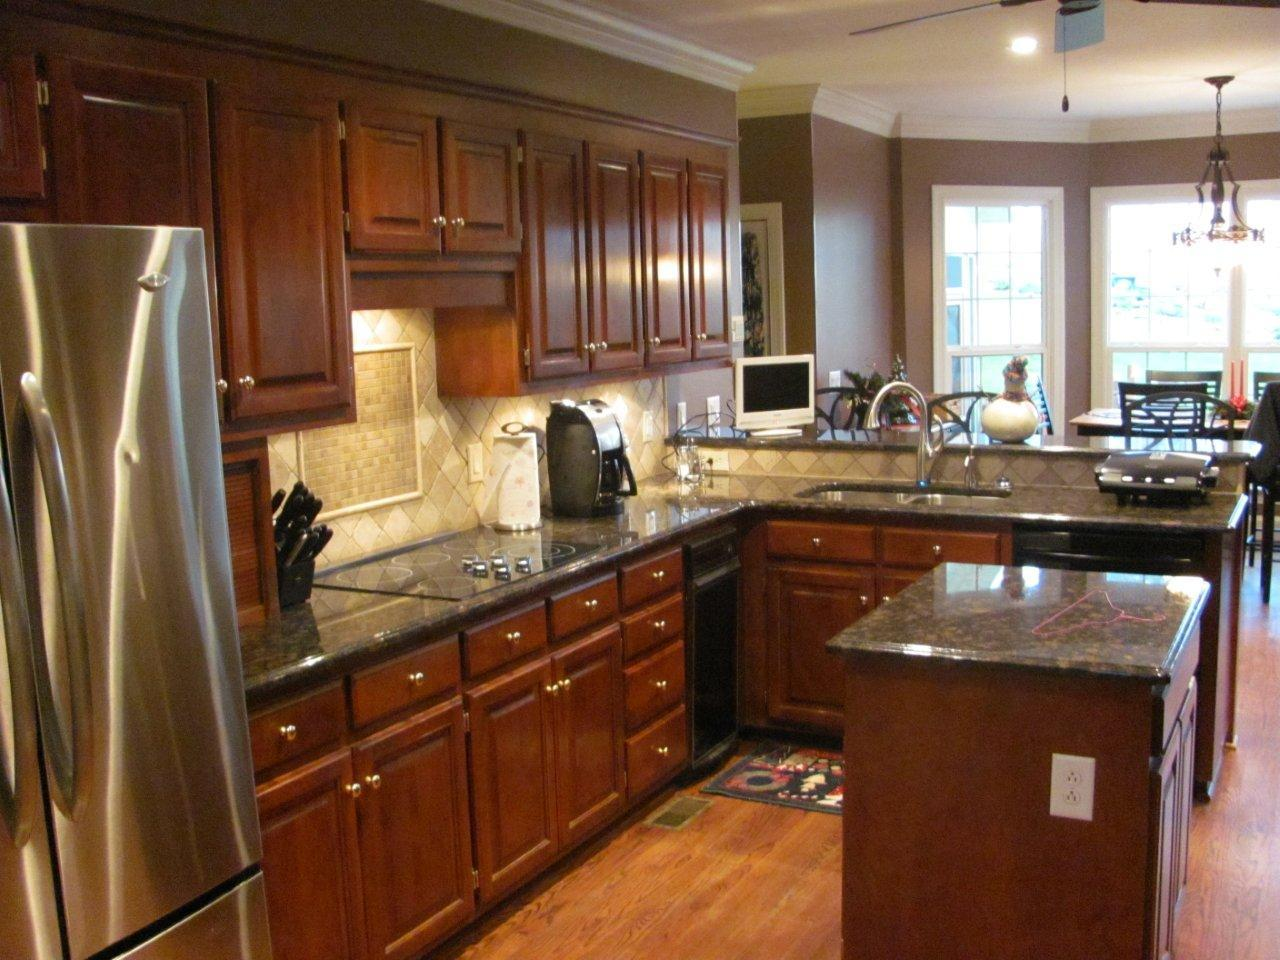 where to start when remodeling a kitchen ikea storage cabinets handicap accessible bathroom guyson construction